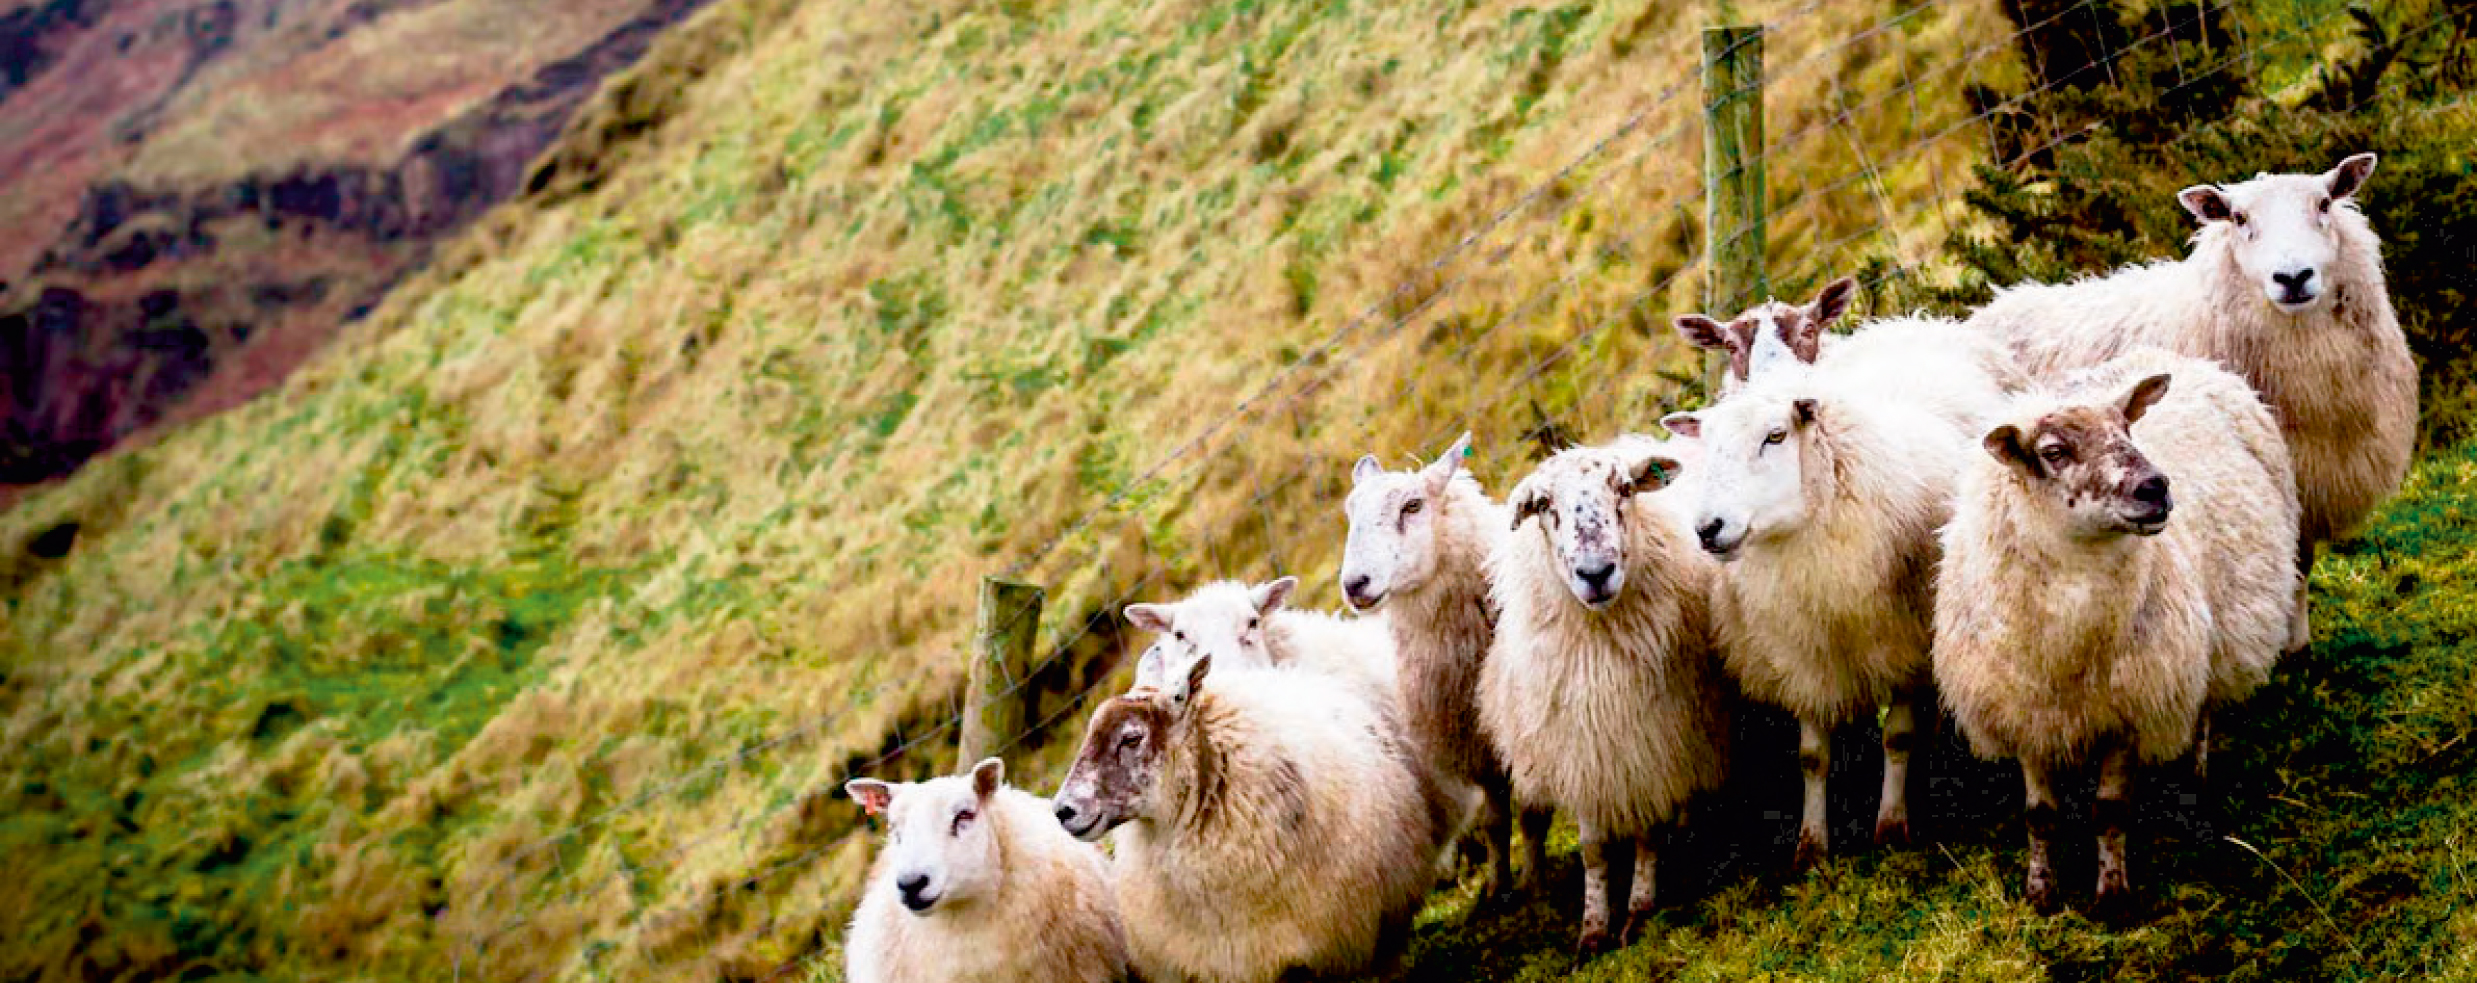 Dansk Wilton carpet solutions are made with wool from New Zealand sheep